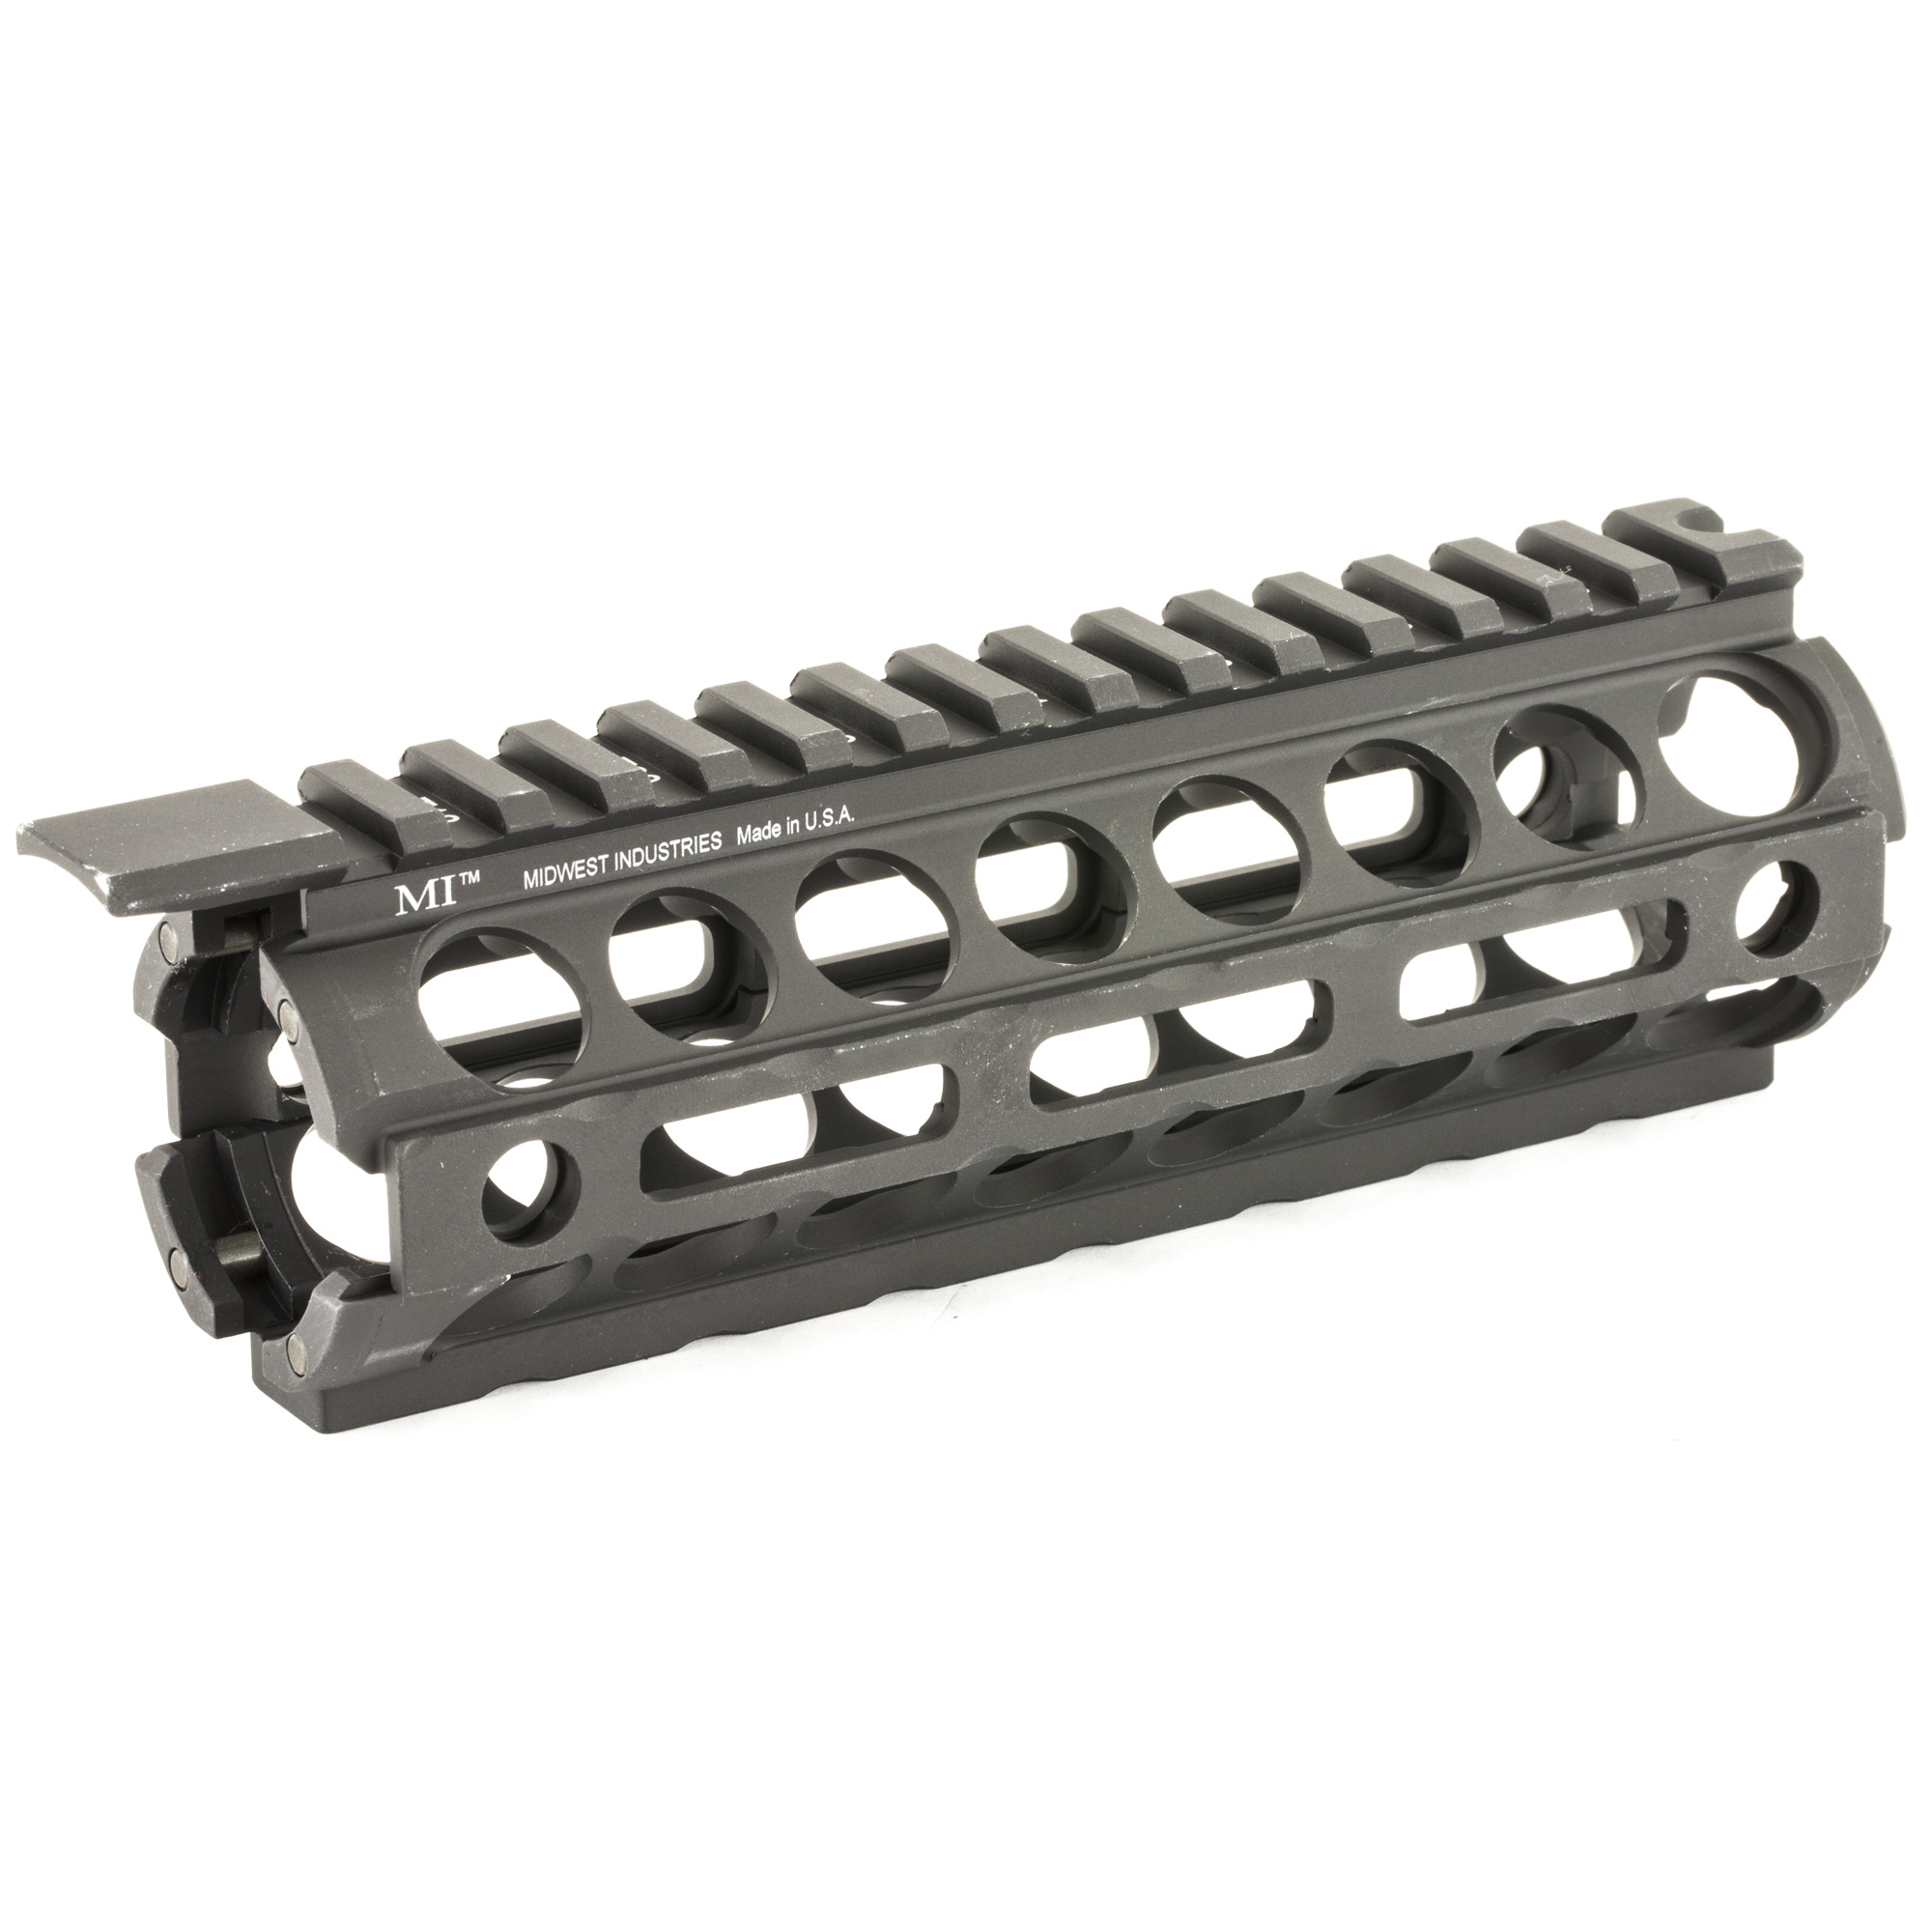 Midwest Industries MI AR-15/M16 M-Series Carbine Length M-Lok Two Piece Drop-In Handguard is incredibly lightweight. It installs in minutes like factory handguards and has five anti rotation QD socket locations for QD swivel rings. It has a monolithic type continuous Mil-Std 1913 top rail.